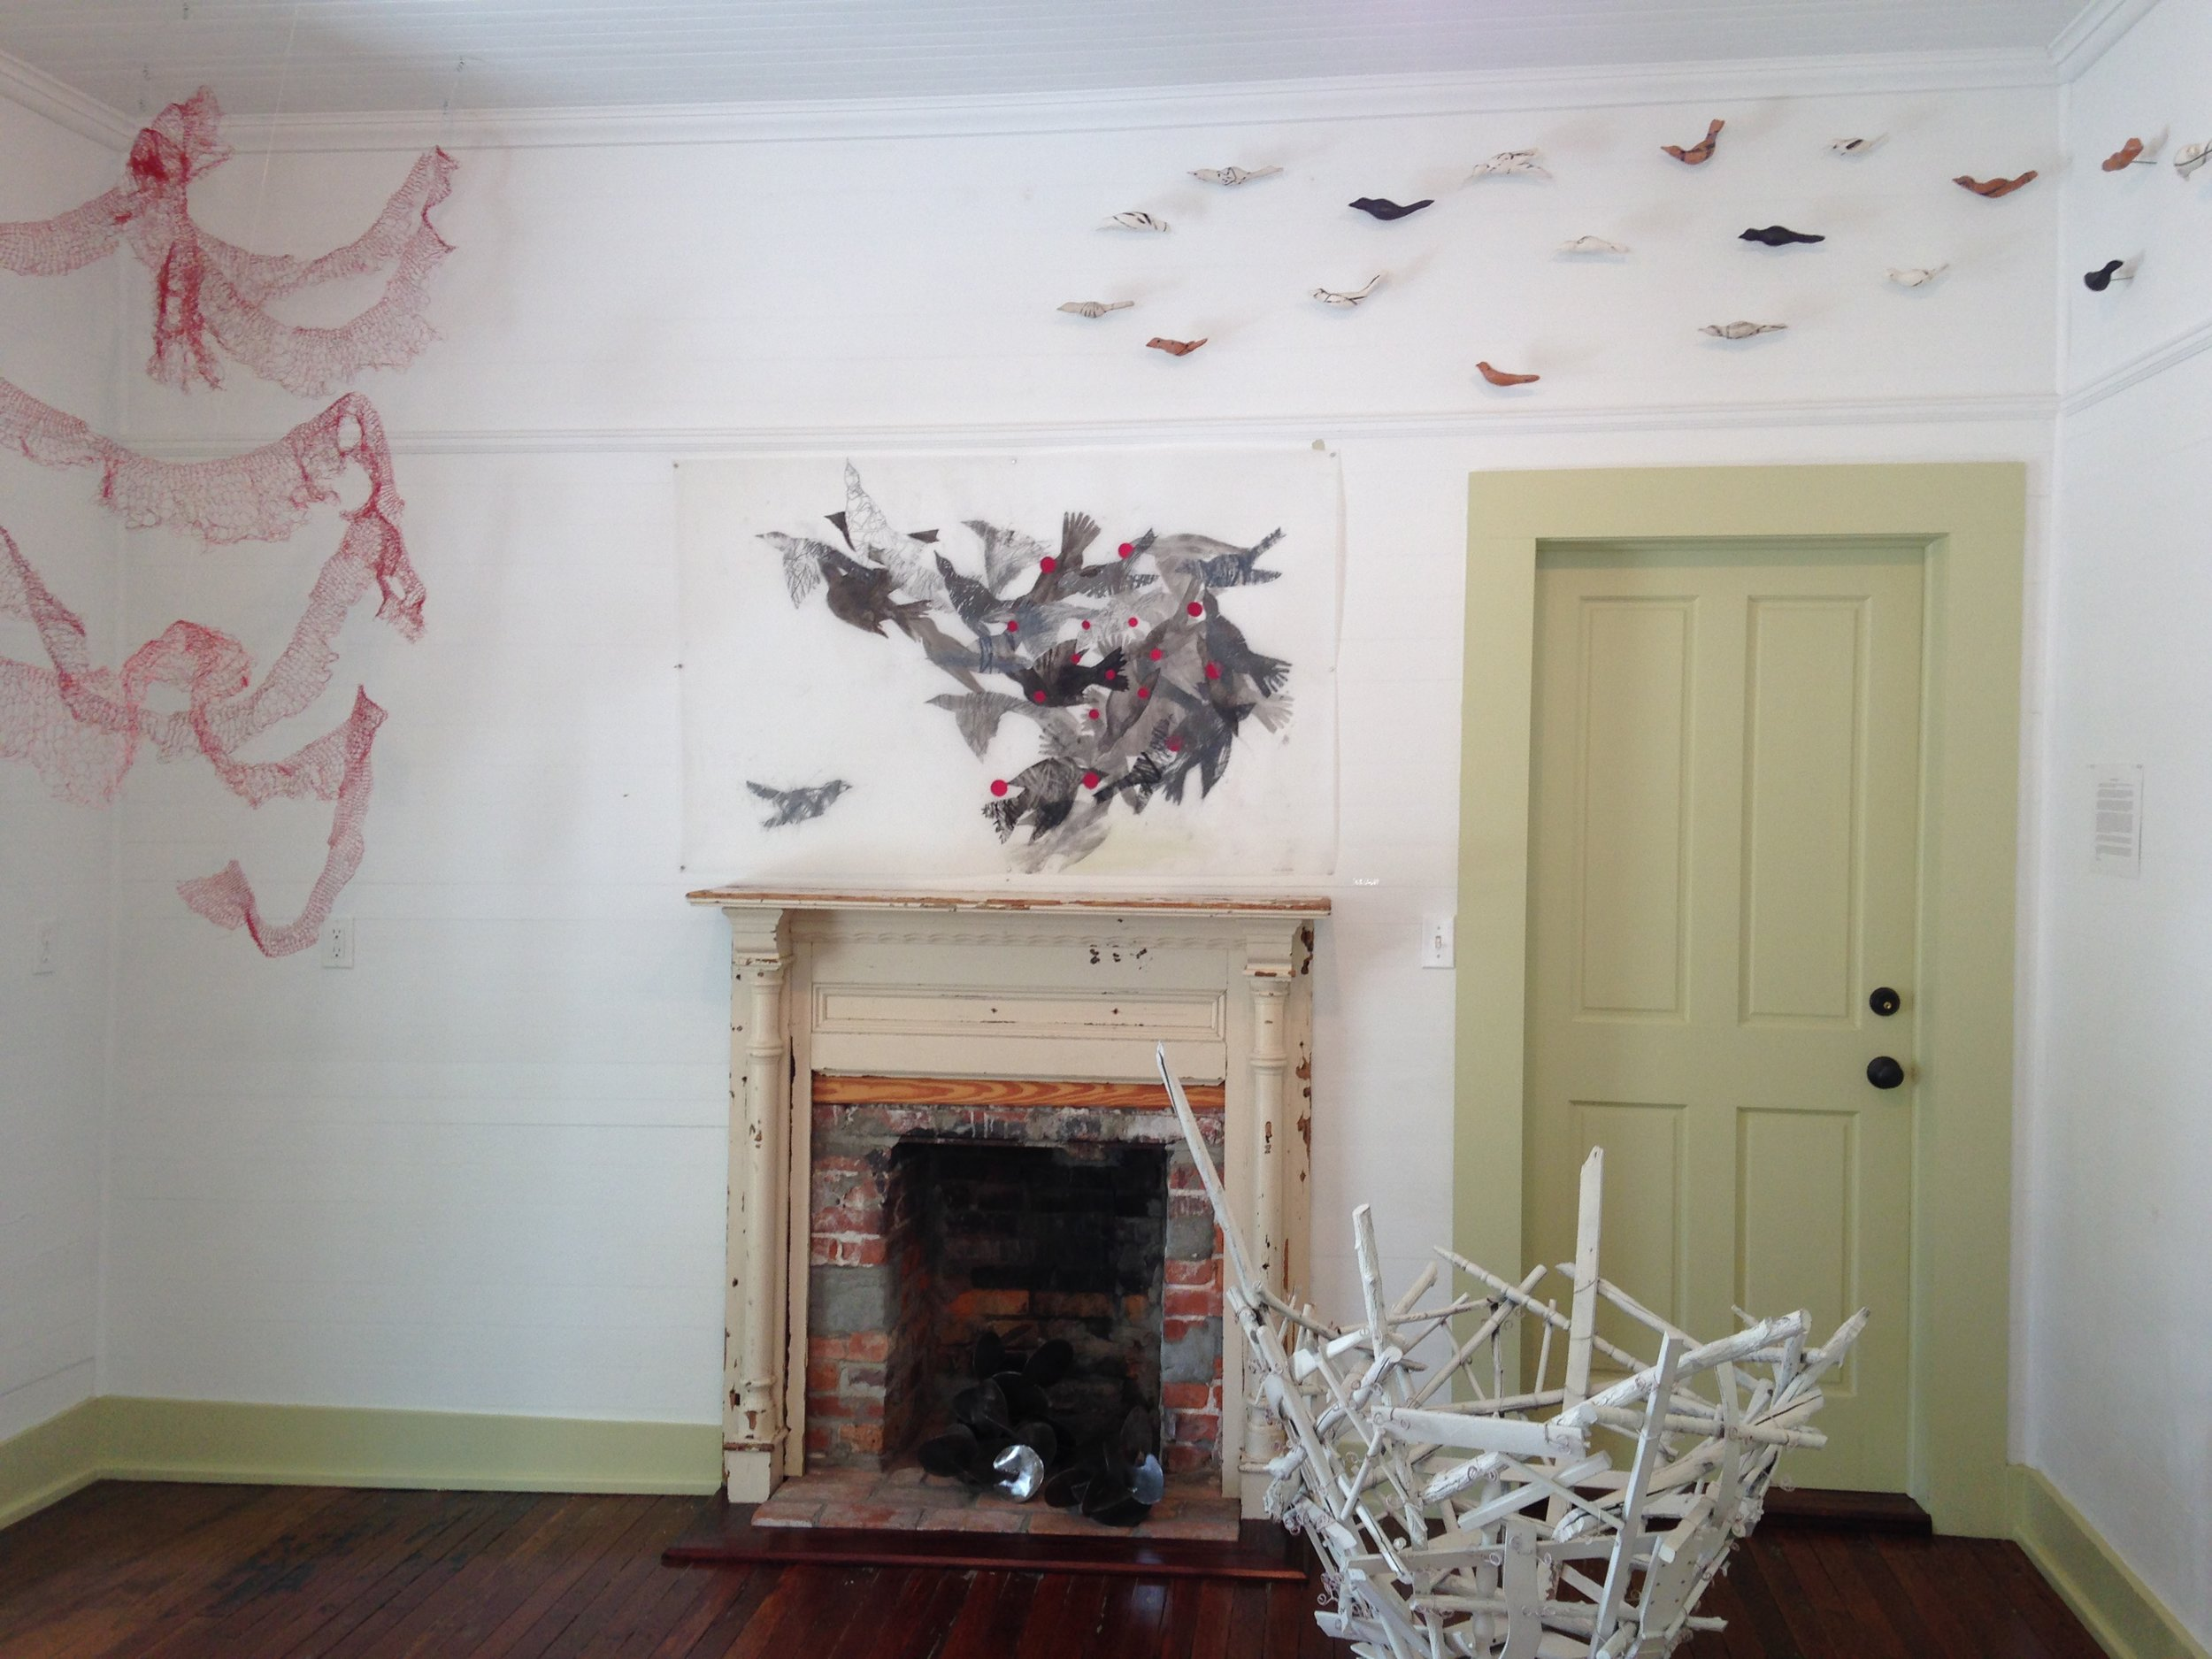 Installation of Birds in Flock with graphite drawings.